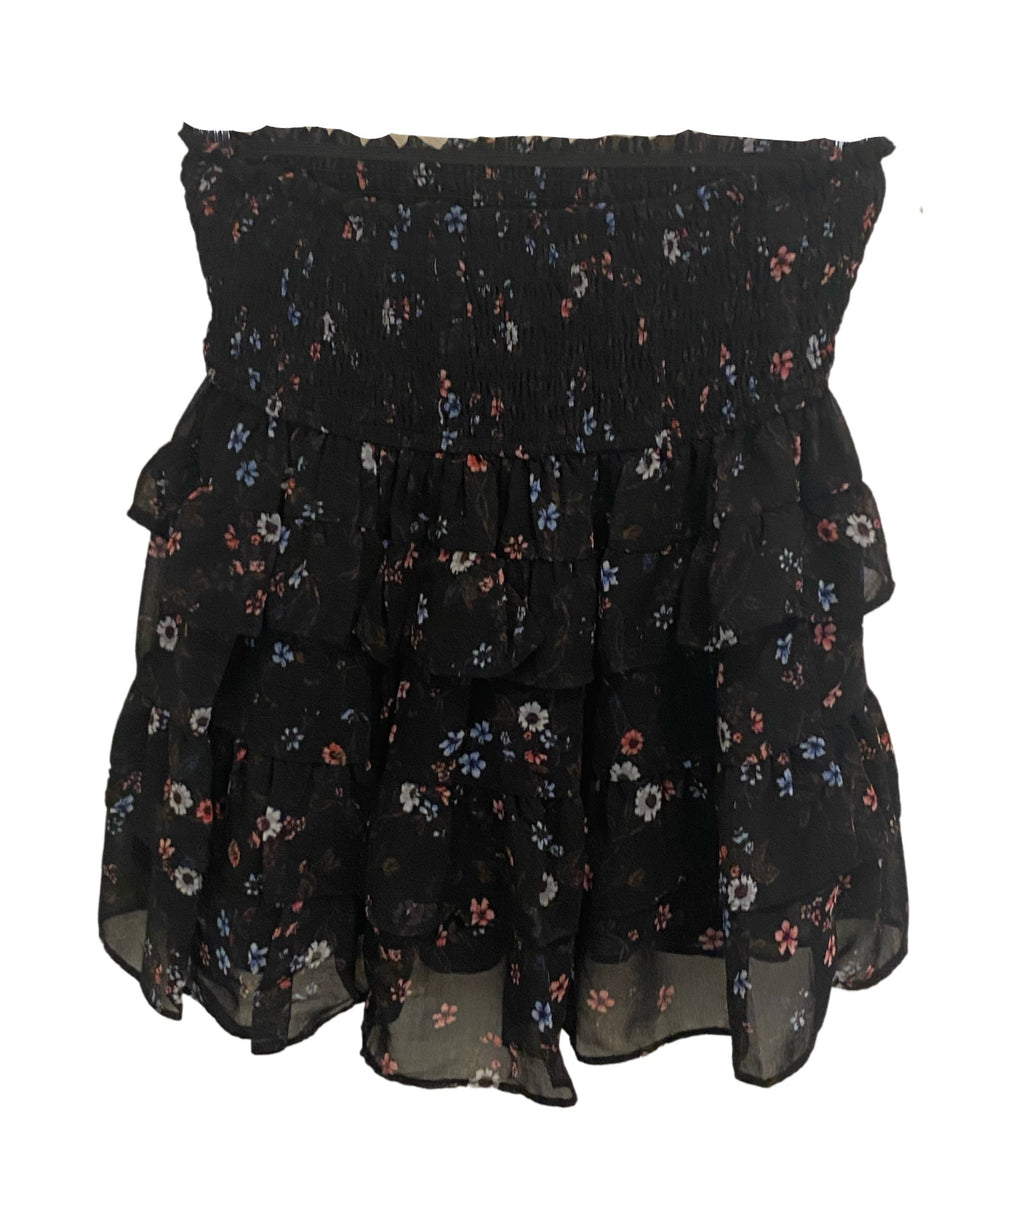 Callie Black Ditsy Floral Smock Skirt Women